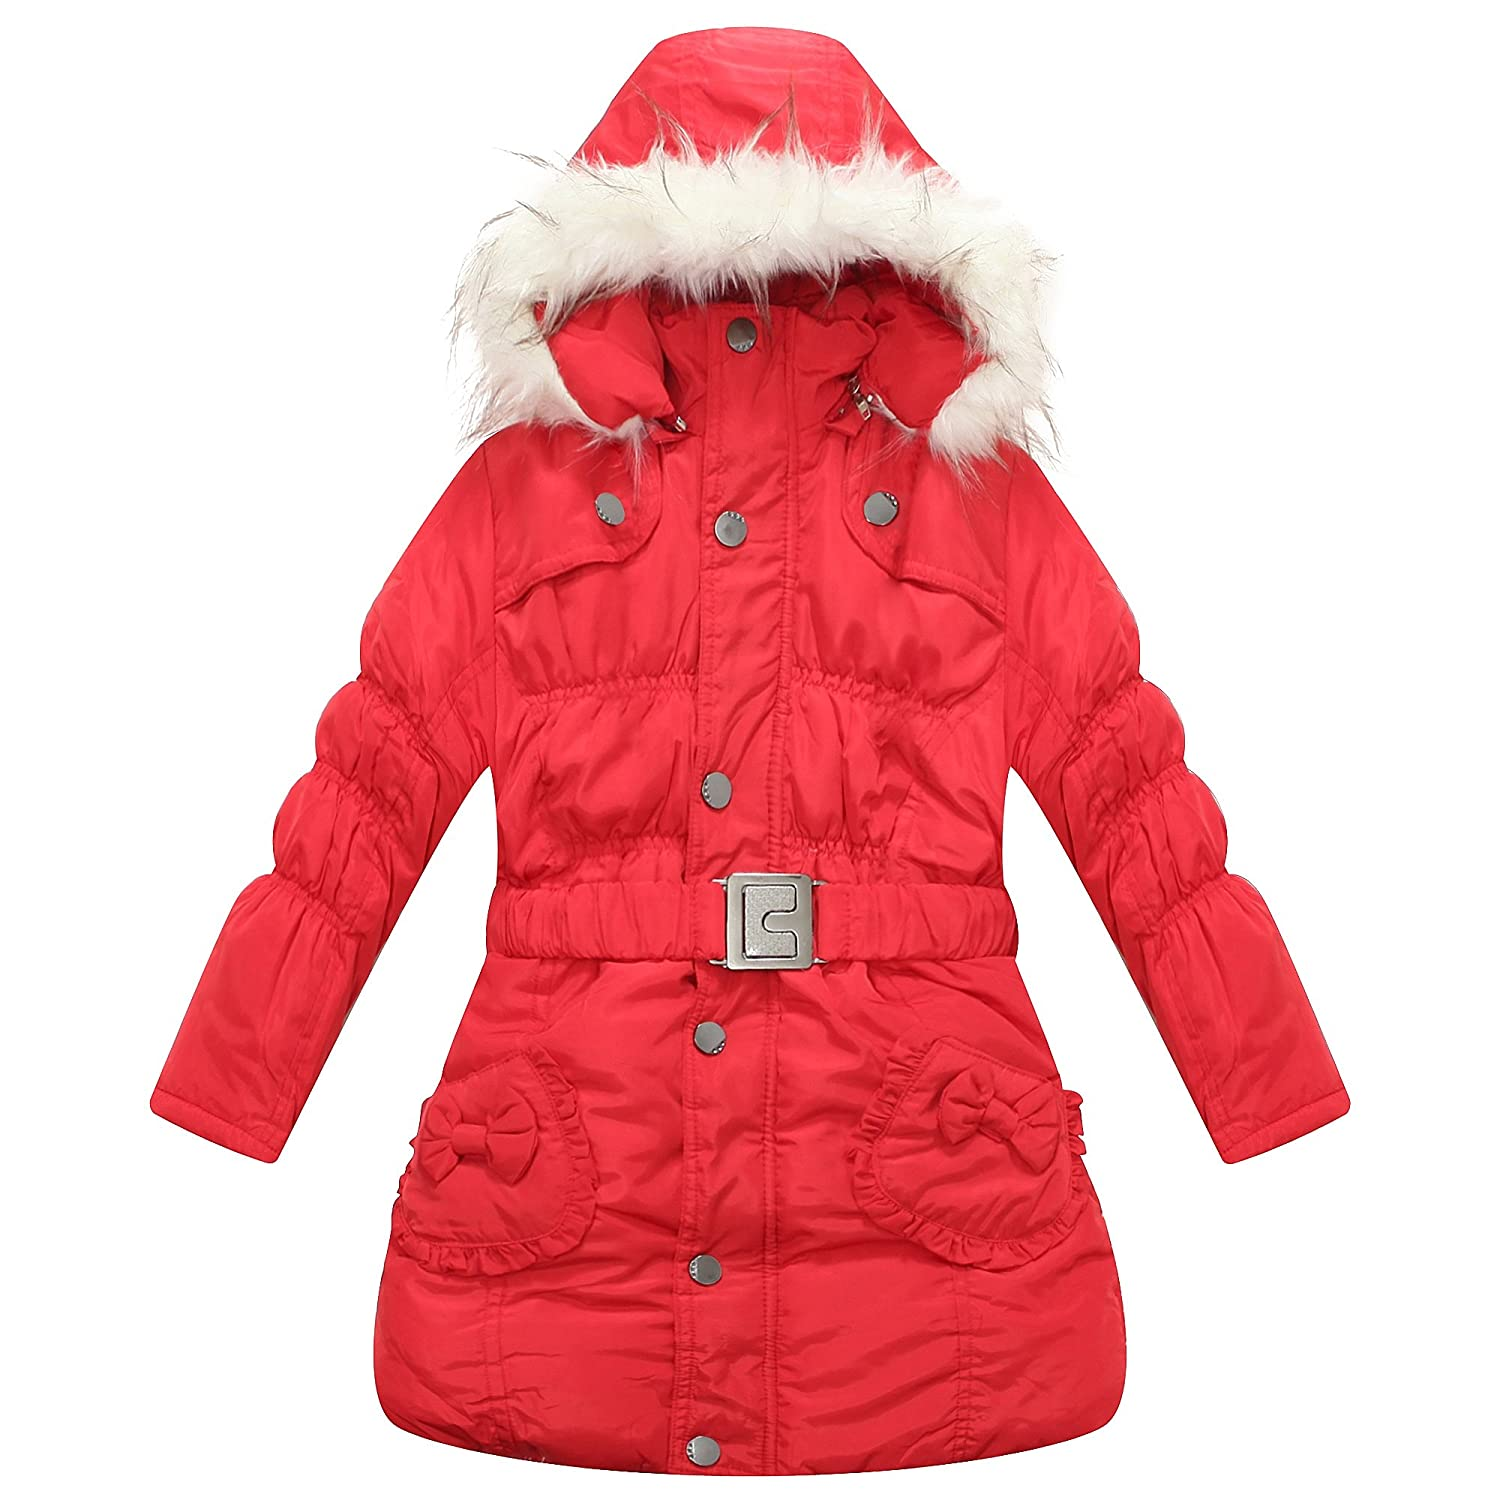 Richie House Girls' Padding Winter Jacket Size 4-10 Rh0785